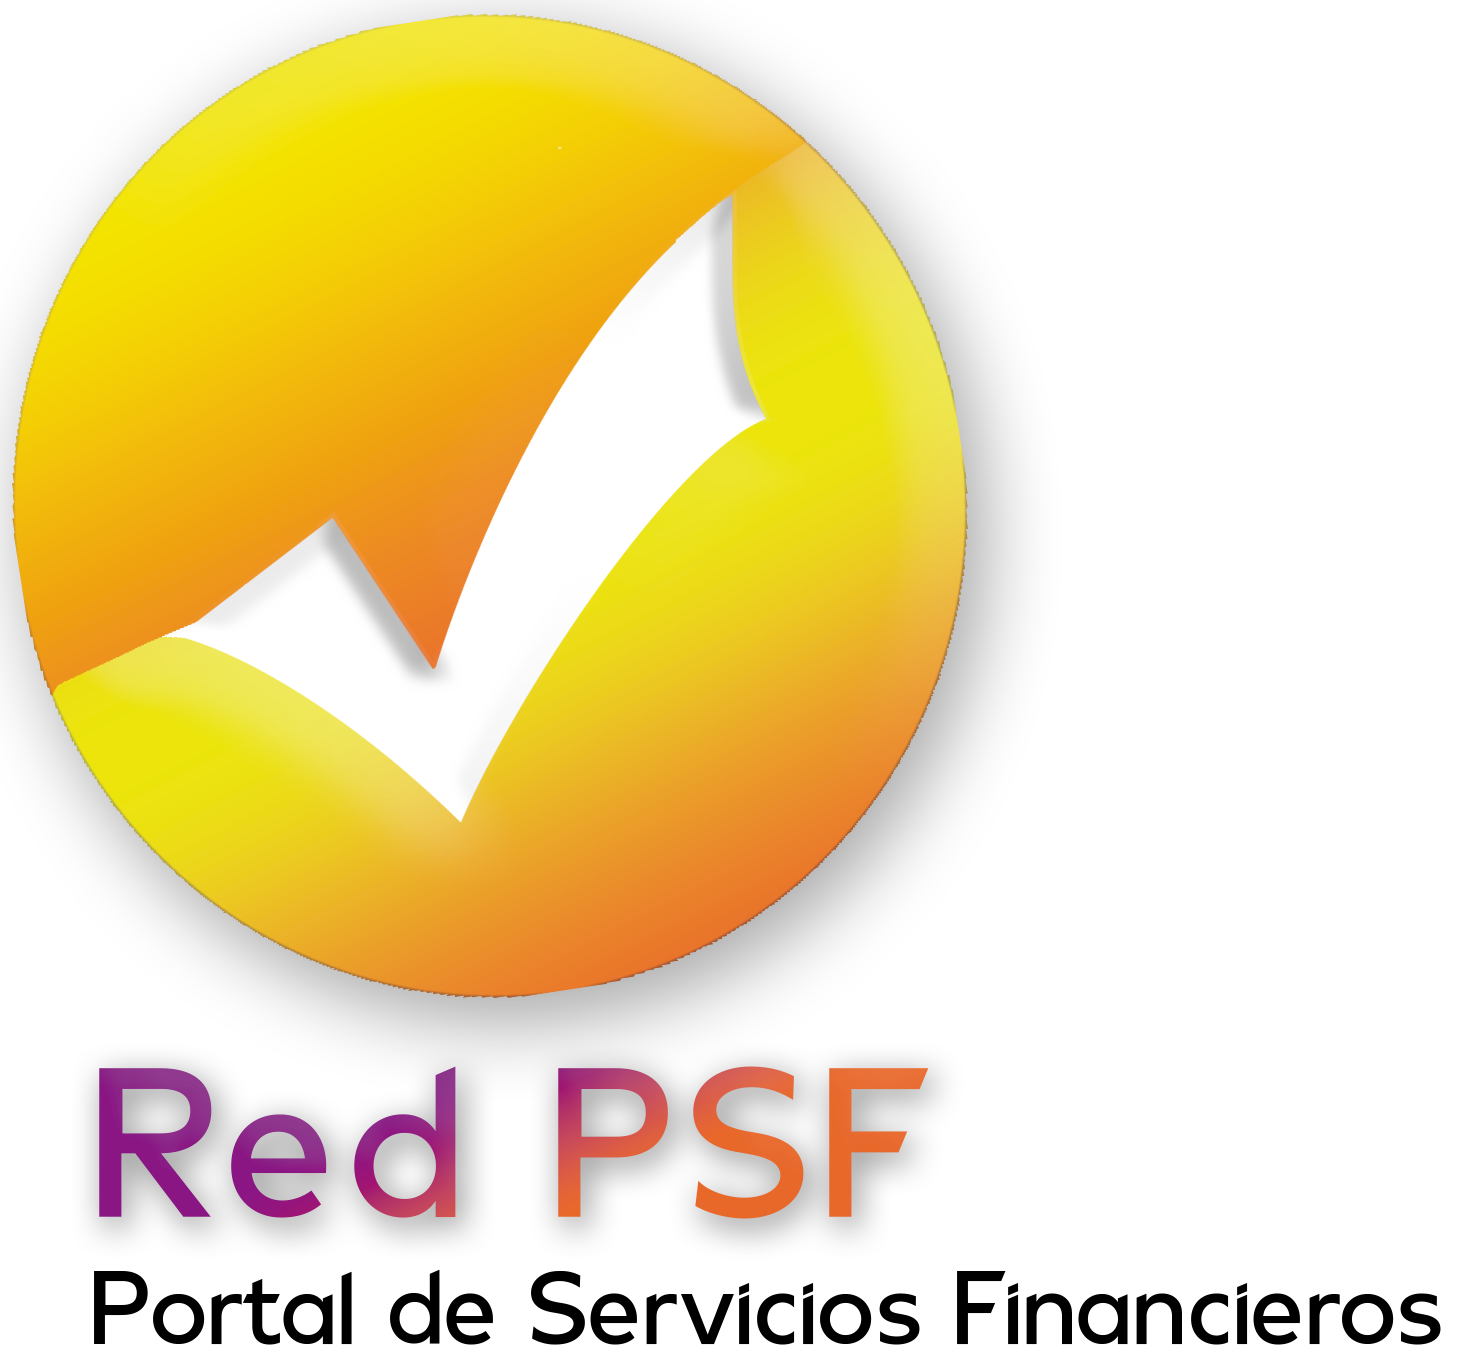 Red PSF